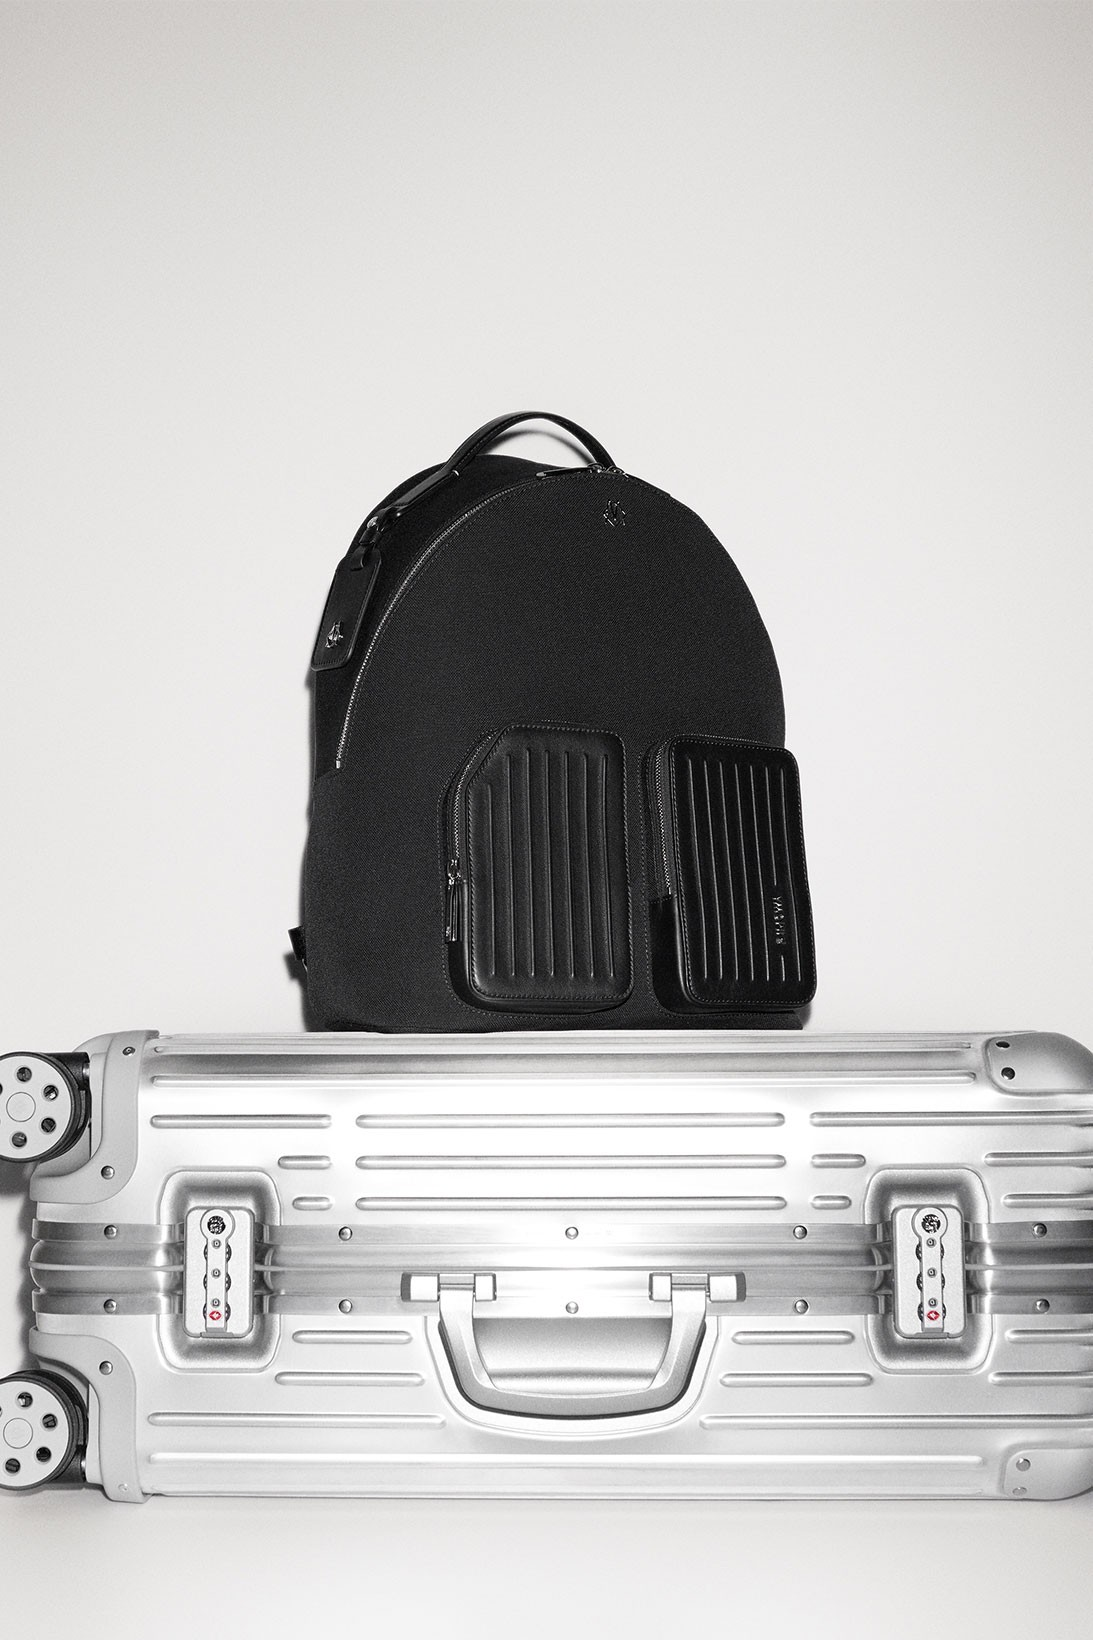 rimowa never still handbags backpacks totes collection price release